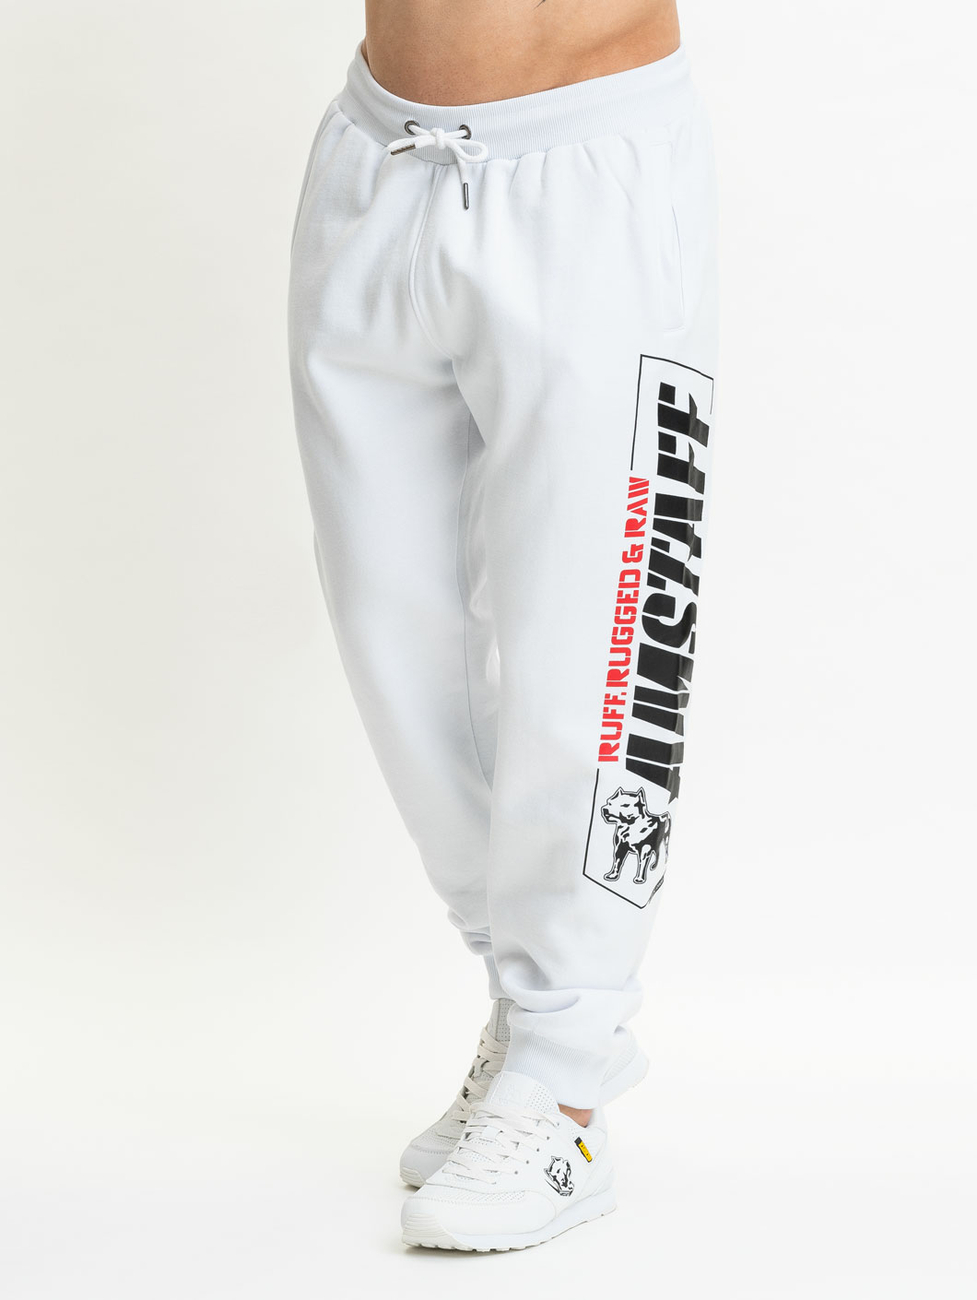 Amstaff Banor Sweatpants weiß 4XL